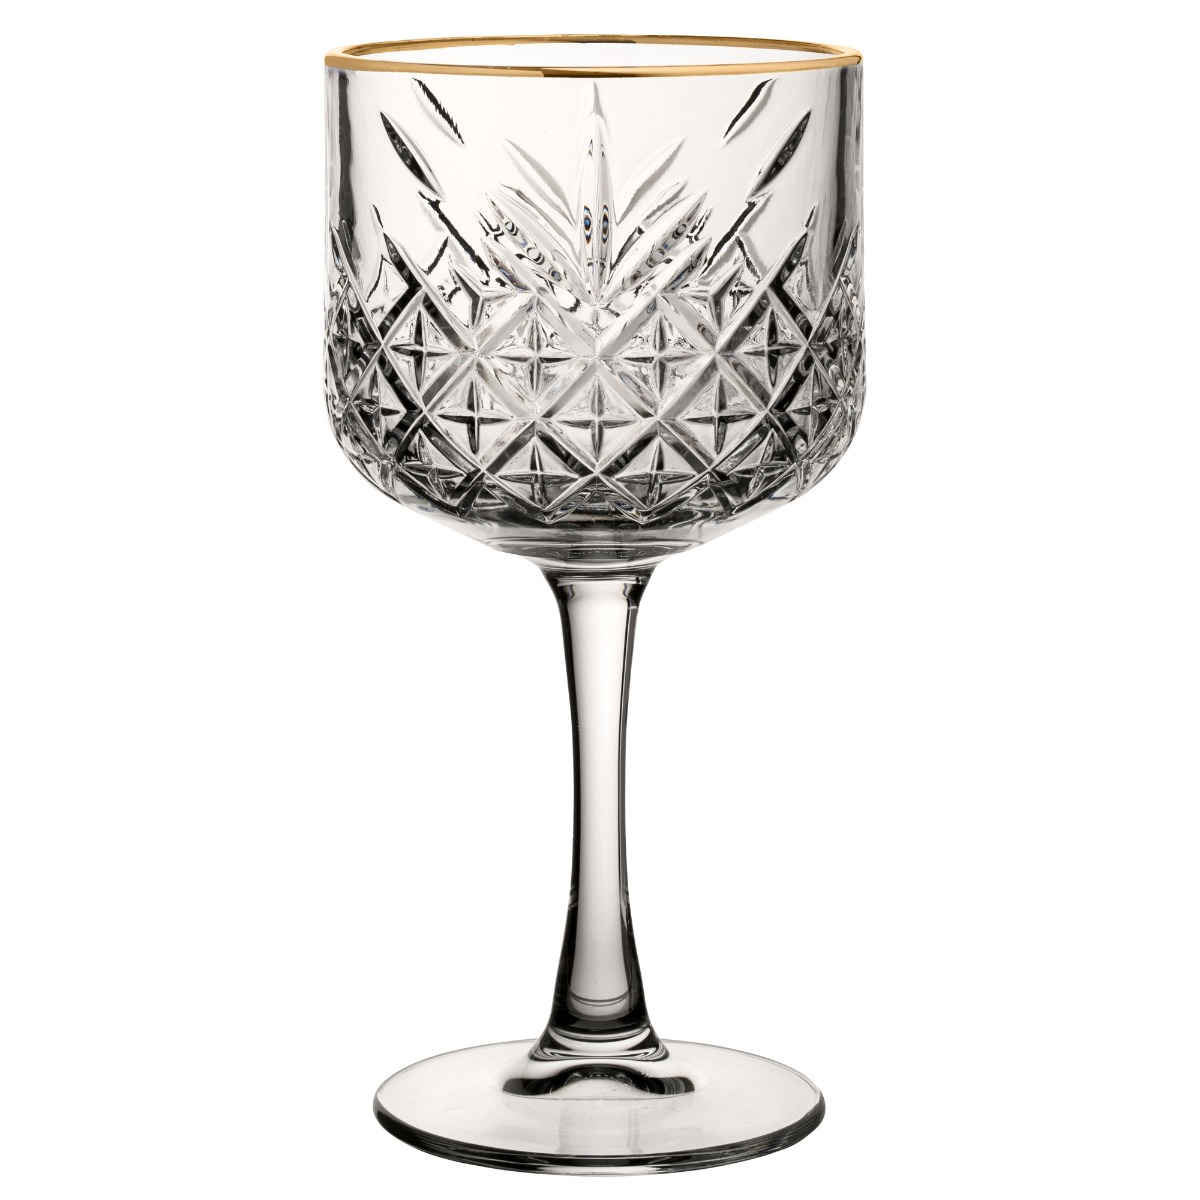 Roaring 20'S Vintage Gin & Tonic Glass - gold rim